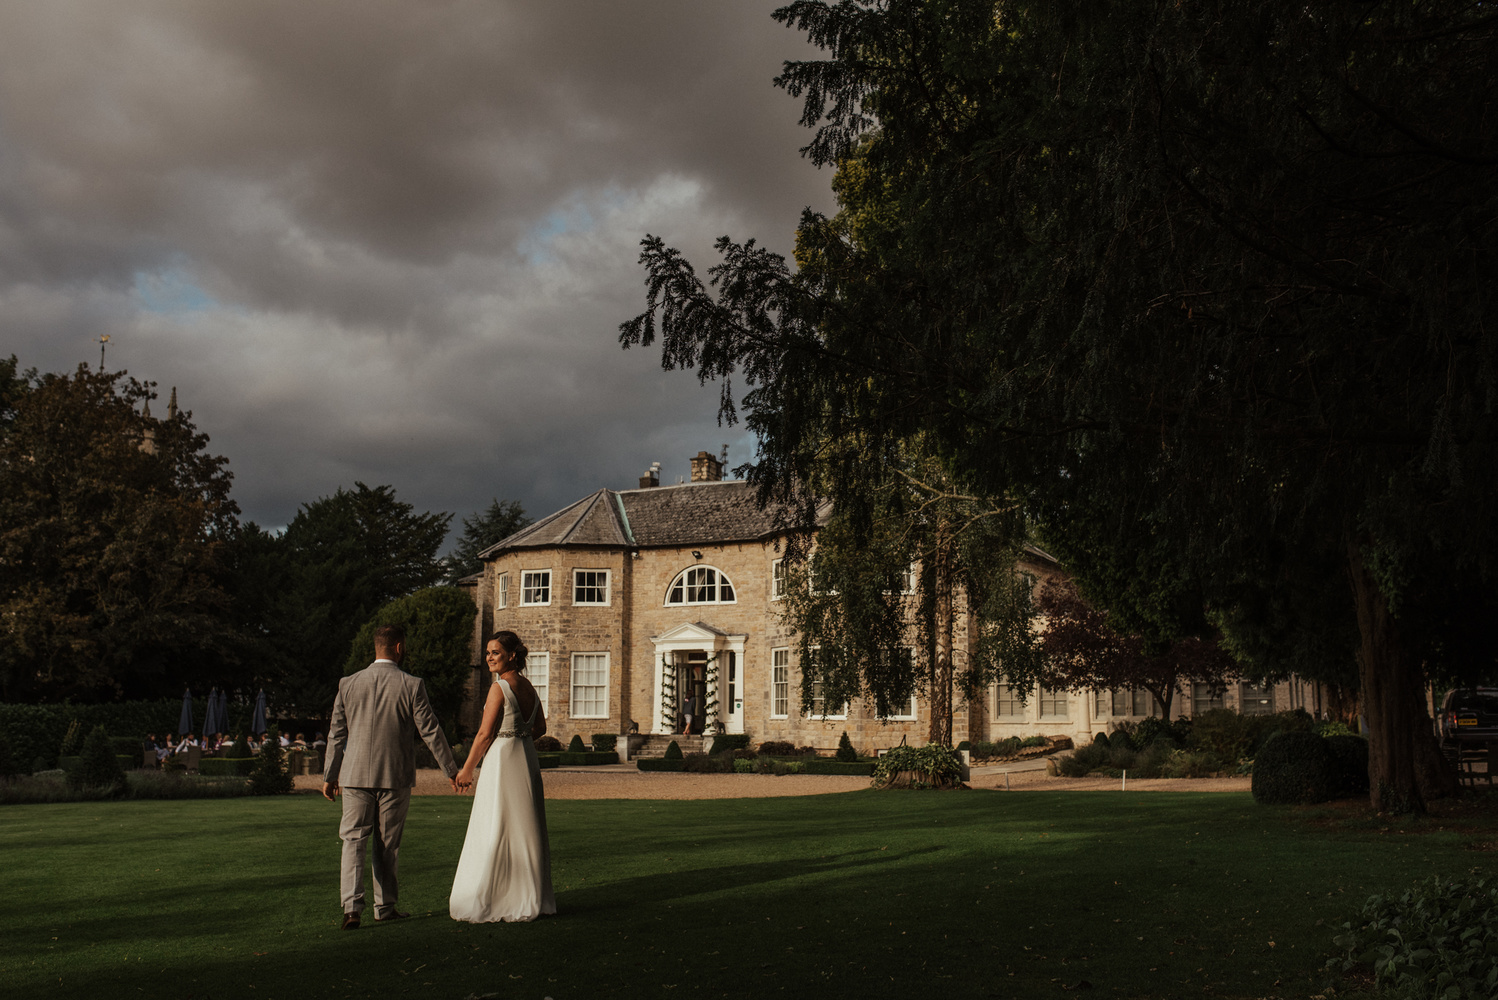 A bride and groom walking in front of a manor.